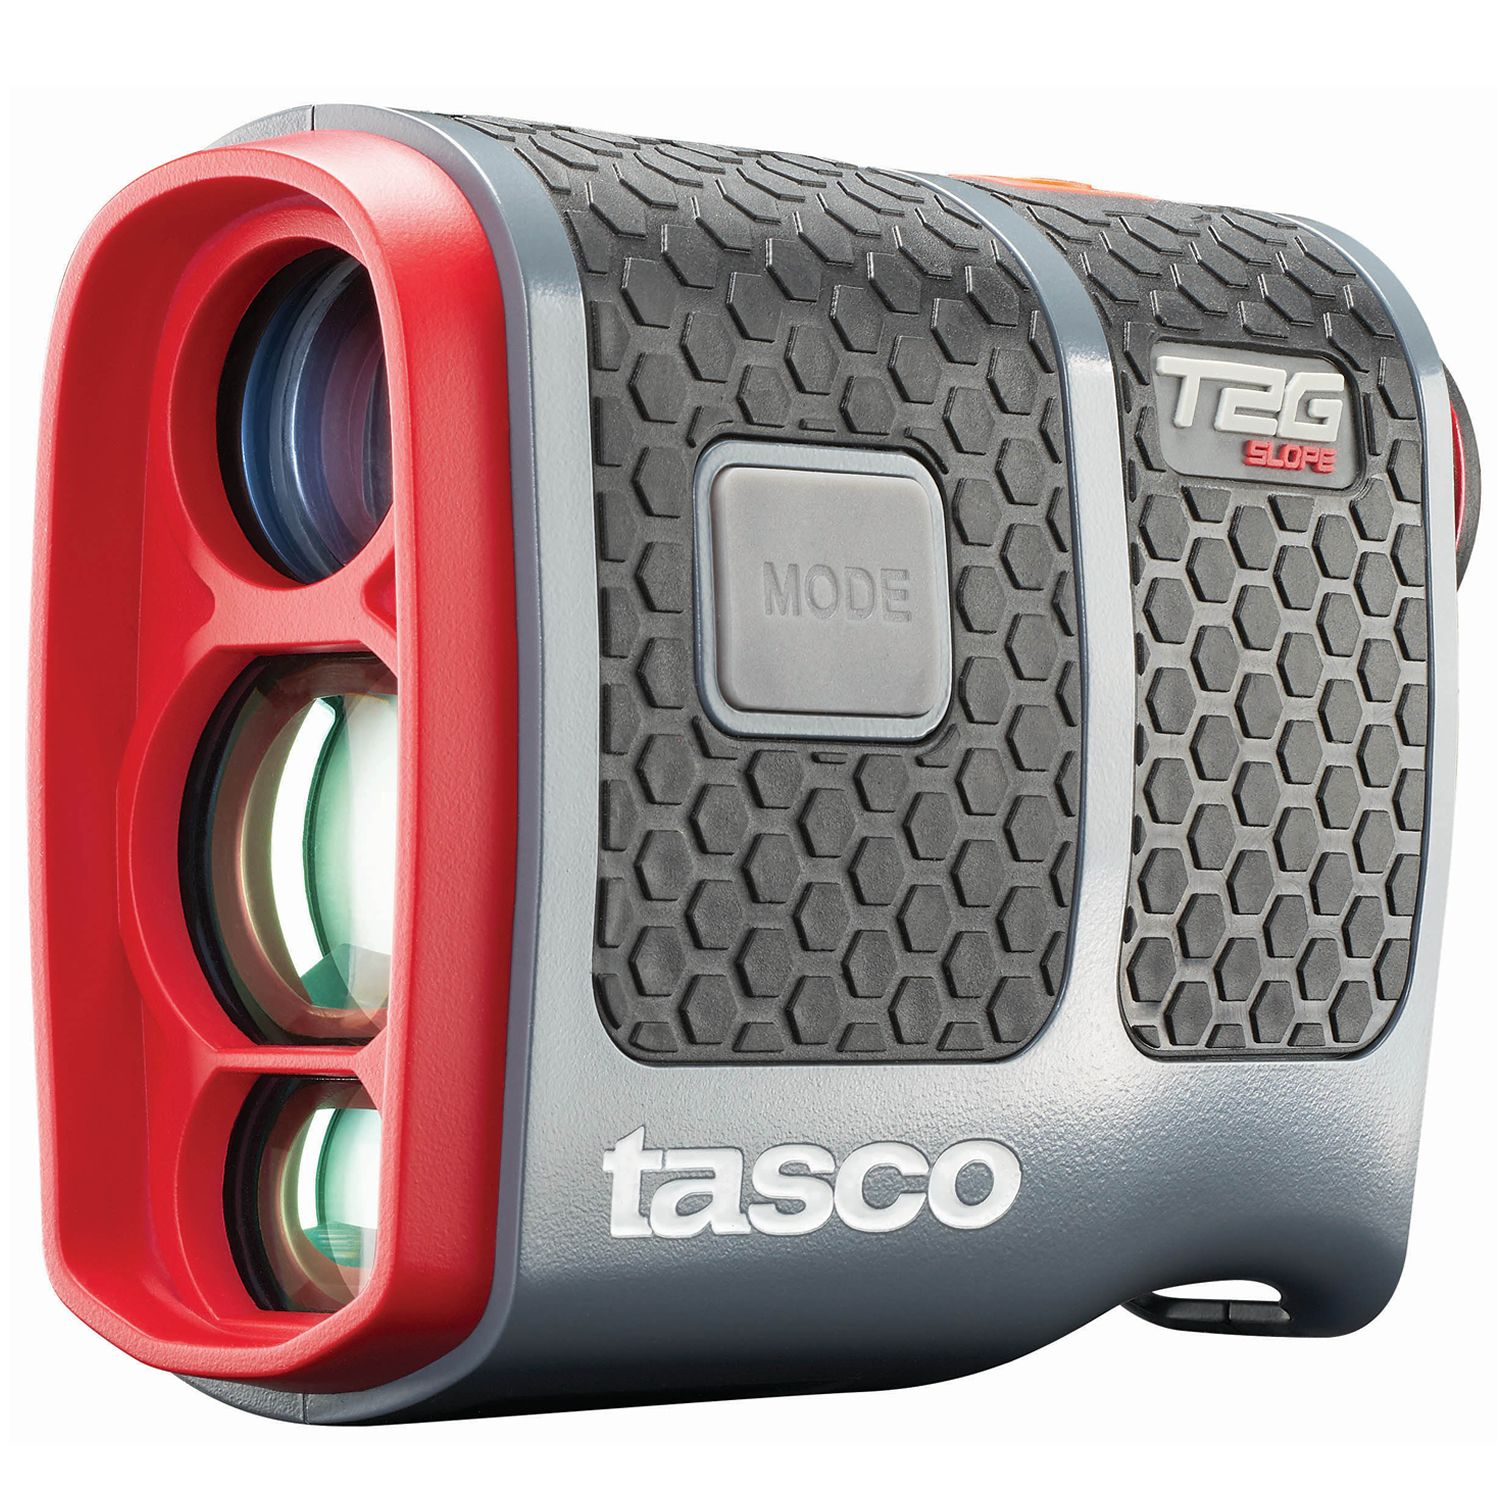 Tasco T2G Slope Golf Laser Rangefinder